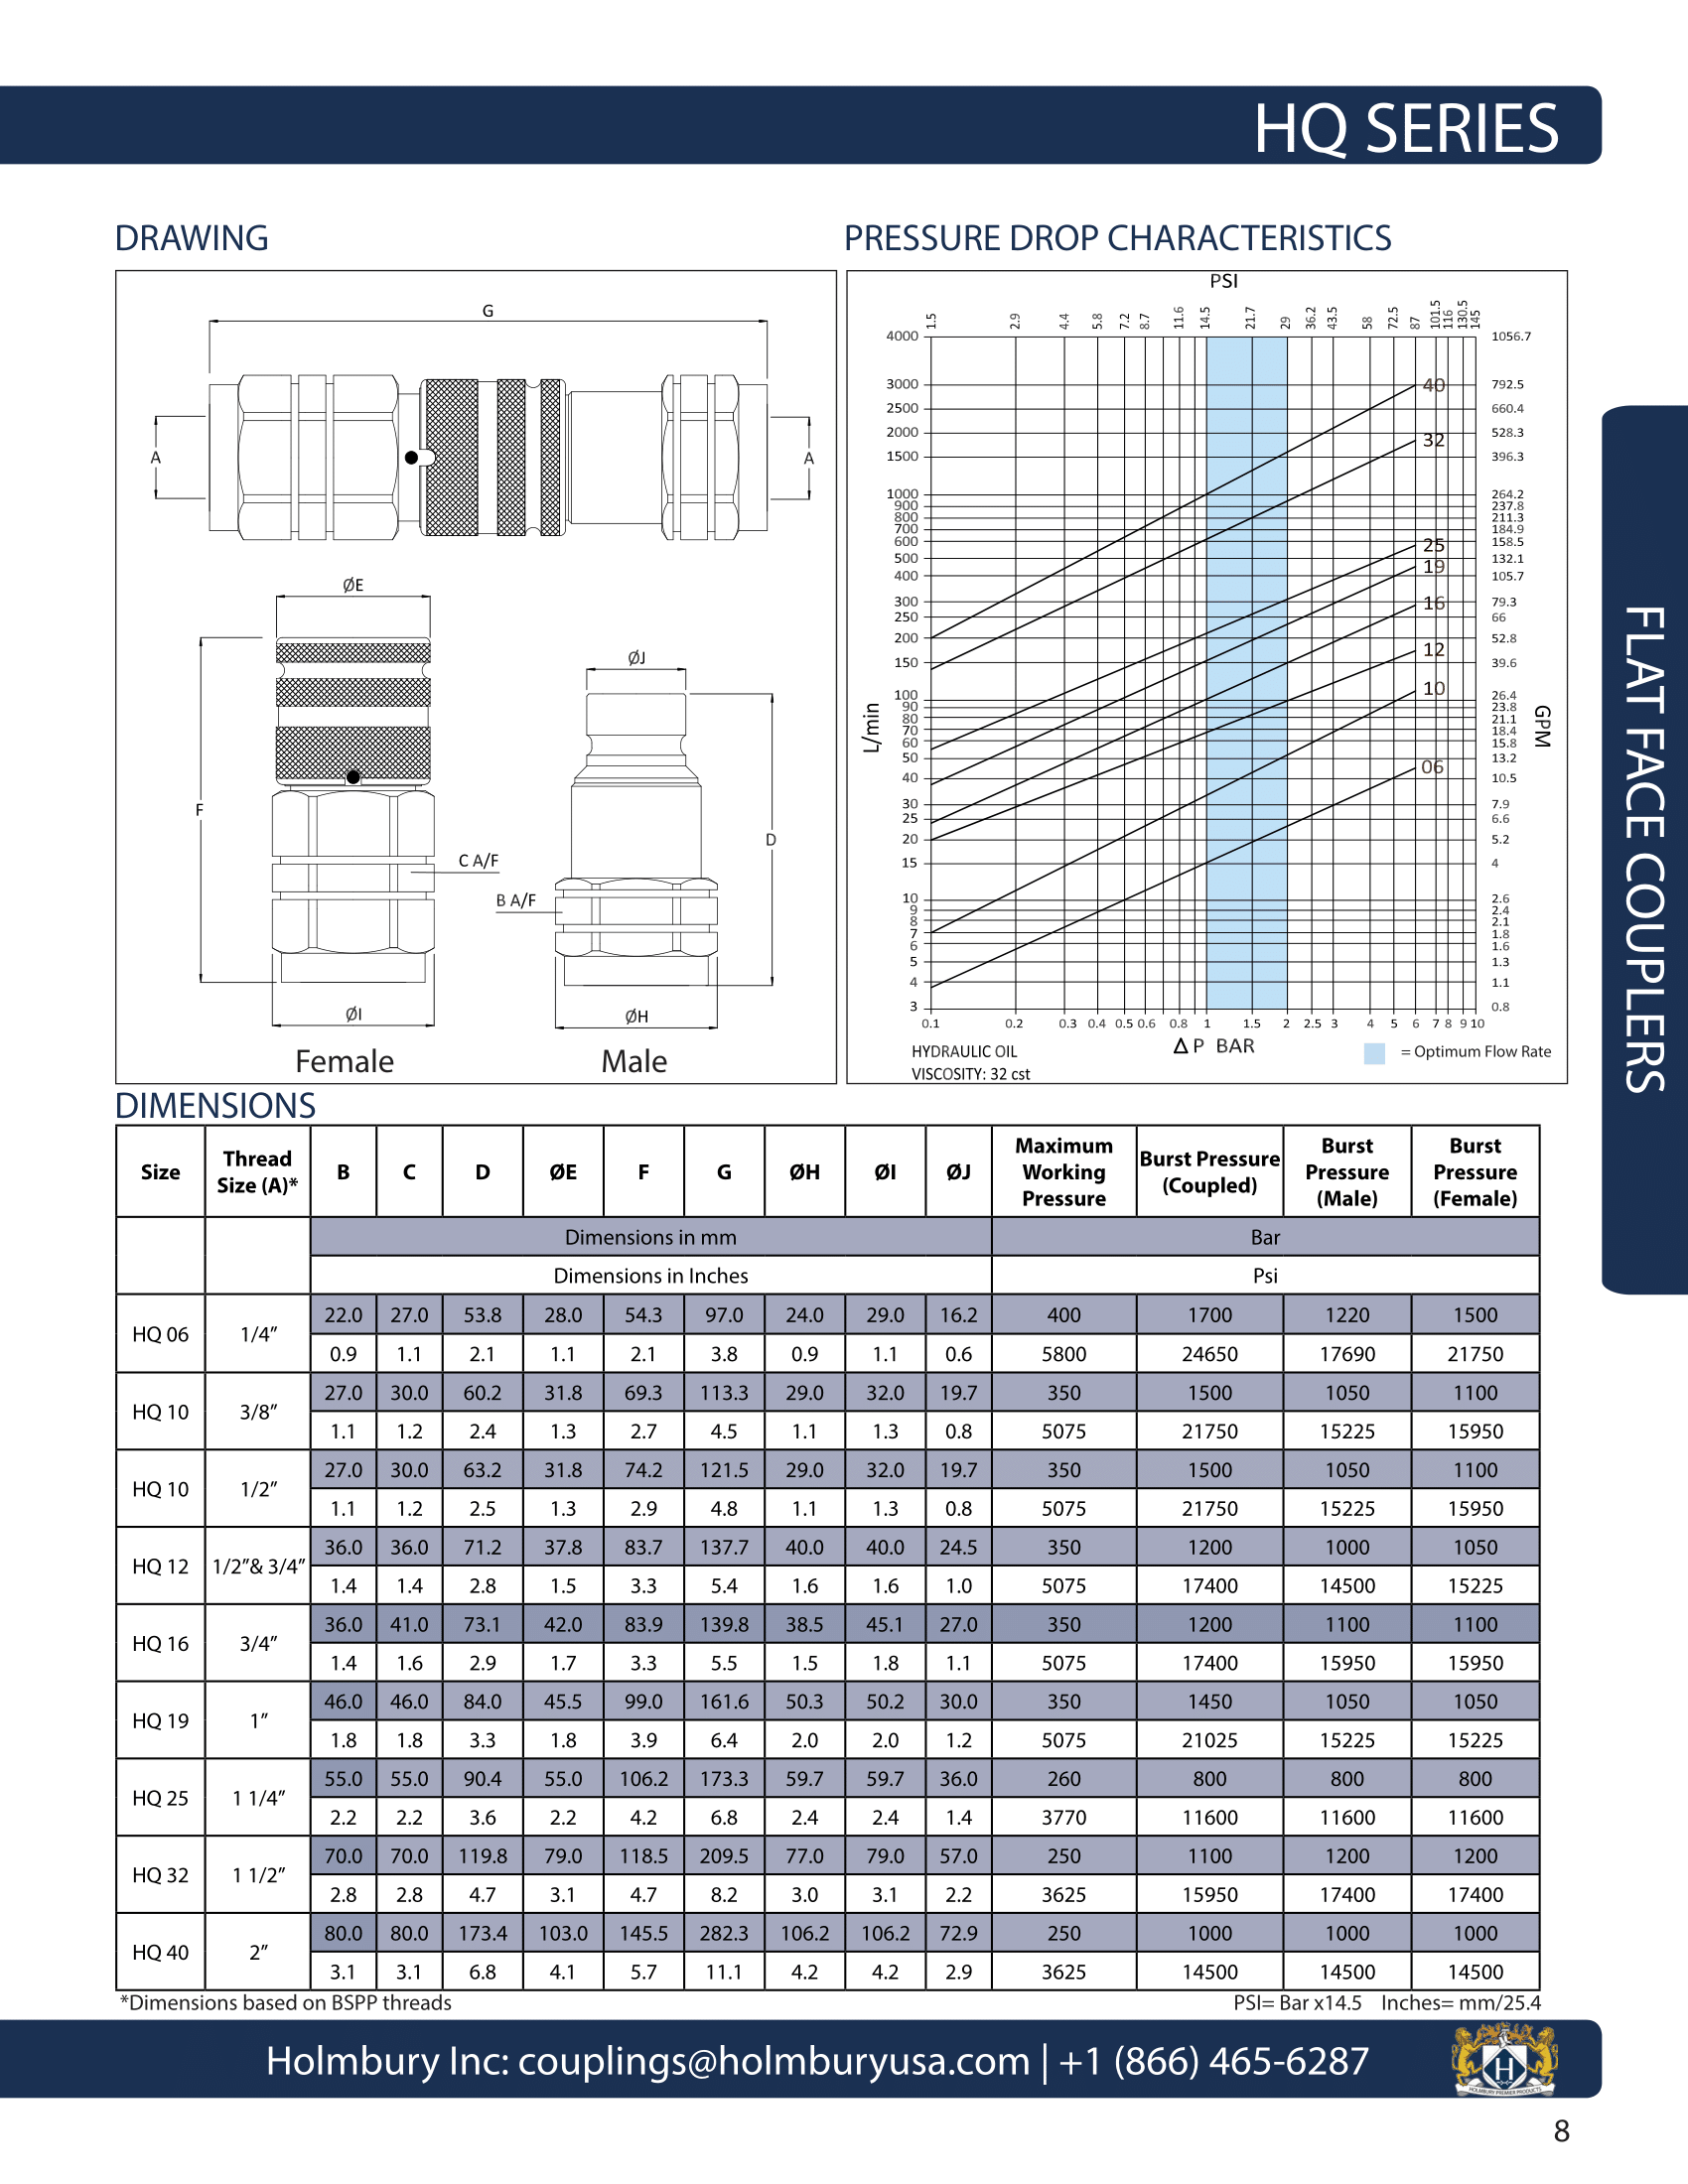 https://parts.hydraulicworld.com/image/catalog/quick%20couplers/HQ%20SPEC%20SHEET-1.png